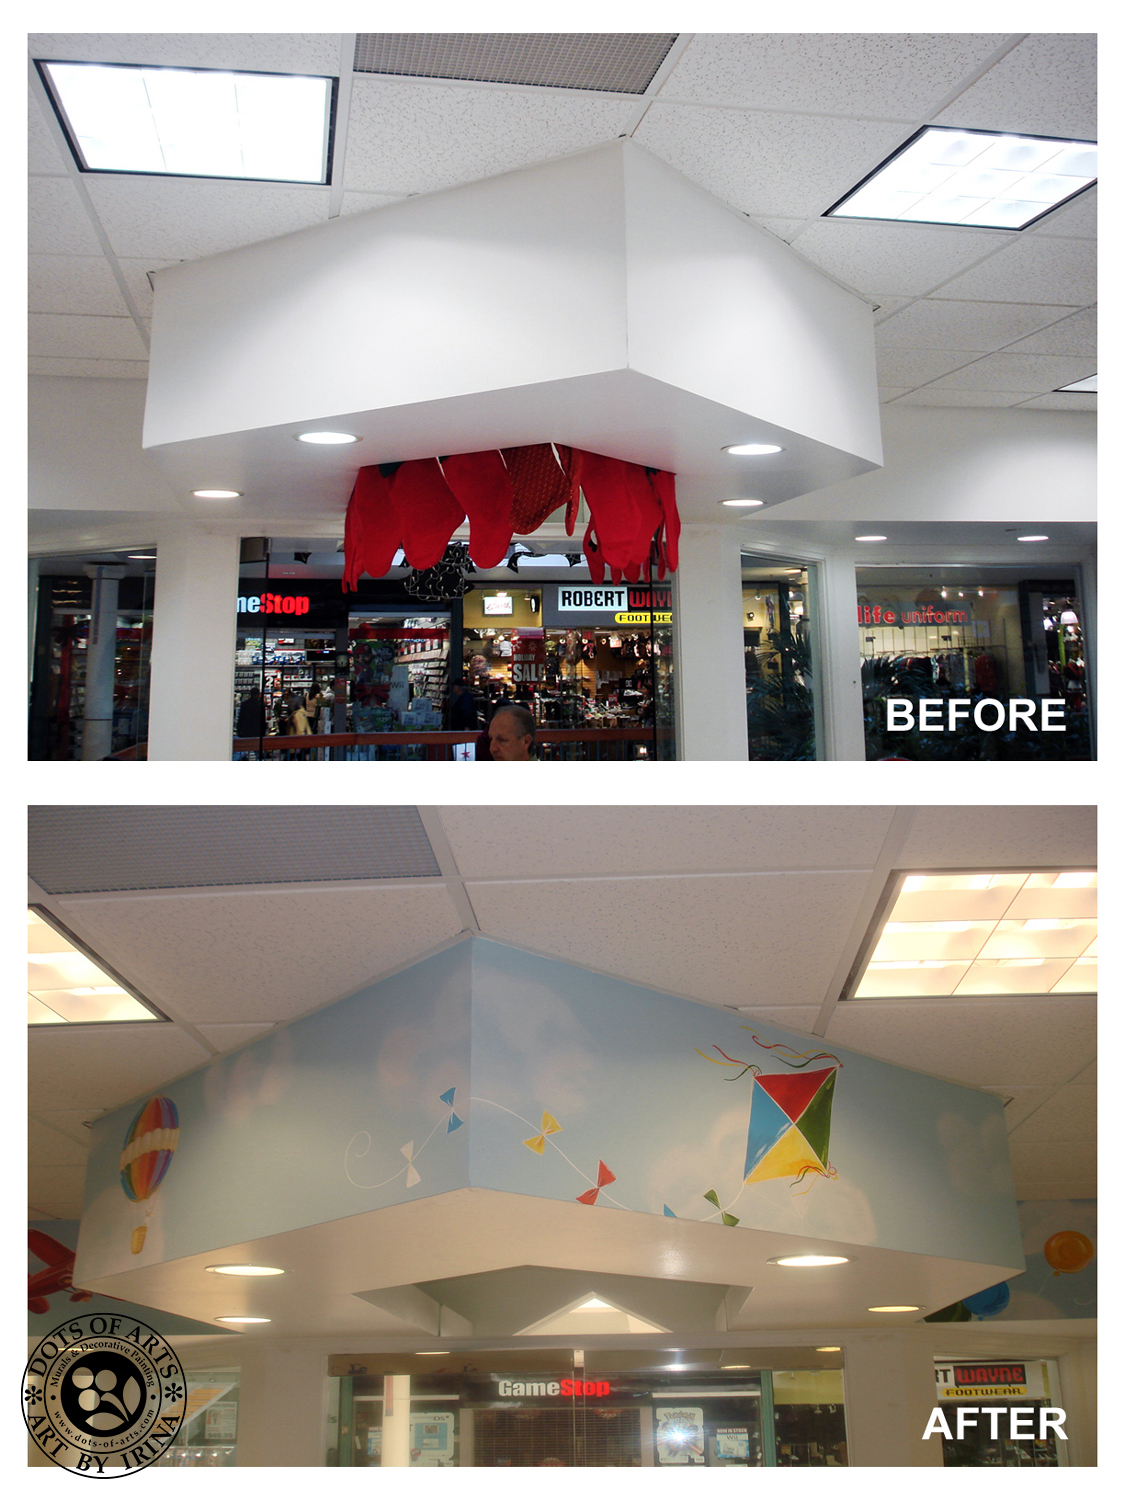 mural-custom-wall-commercial-kidz-kuts-woodbridge-nj-dots-of-arts-befor-after+copy (1).jpg